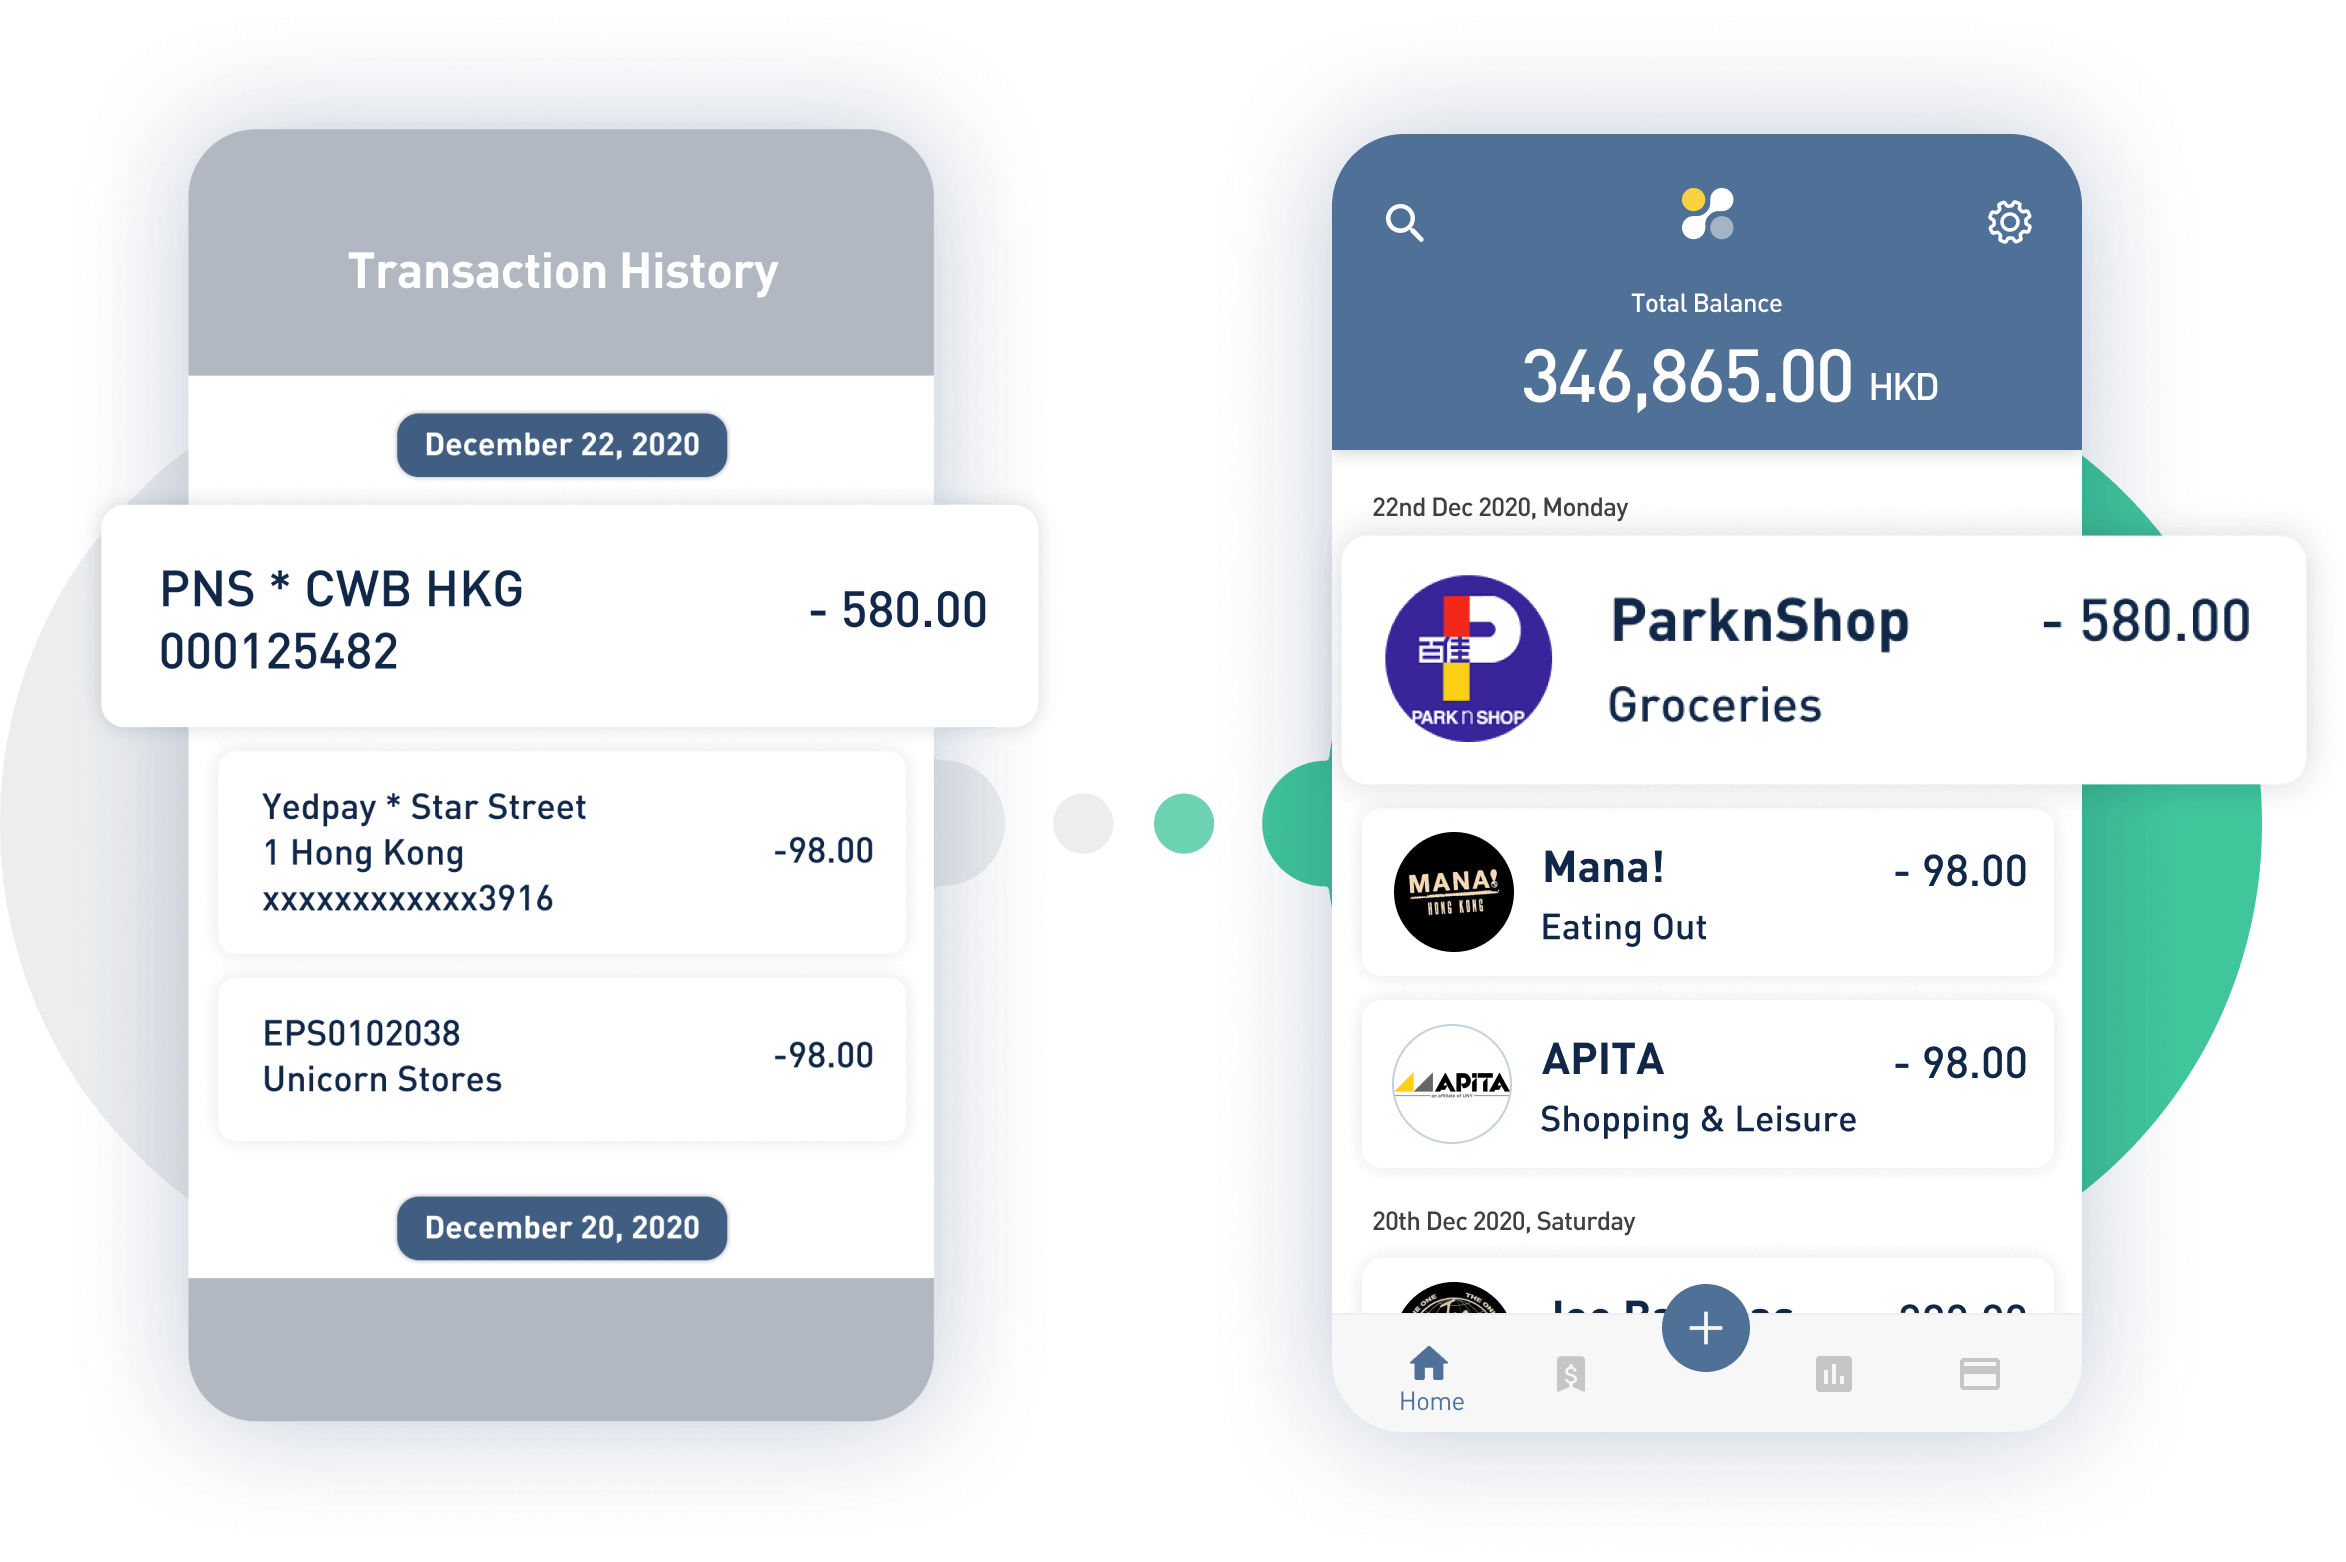 Comparison between confusing non-enriched and clear enriched transactions